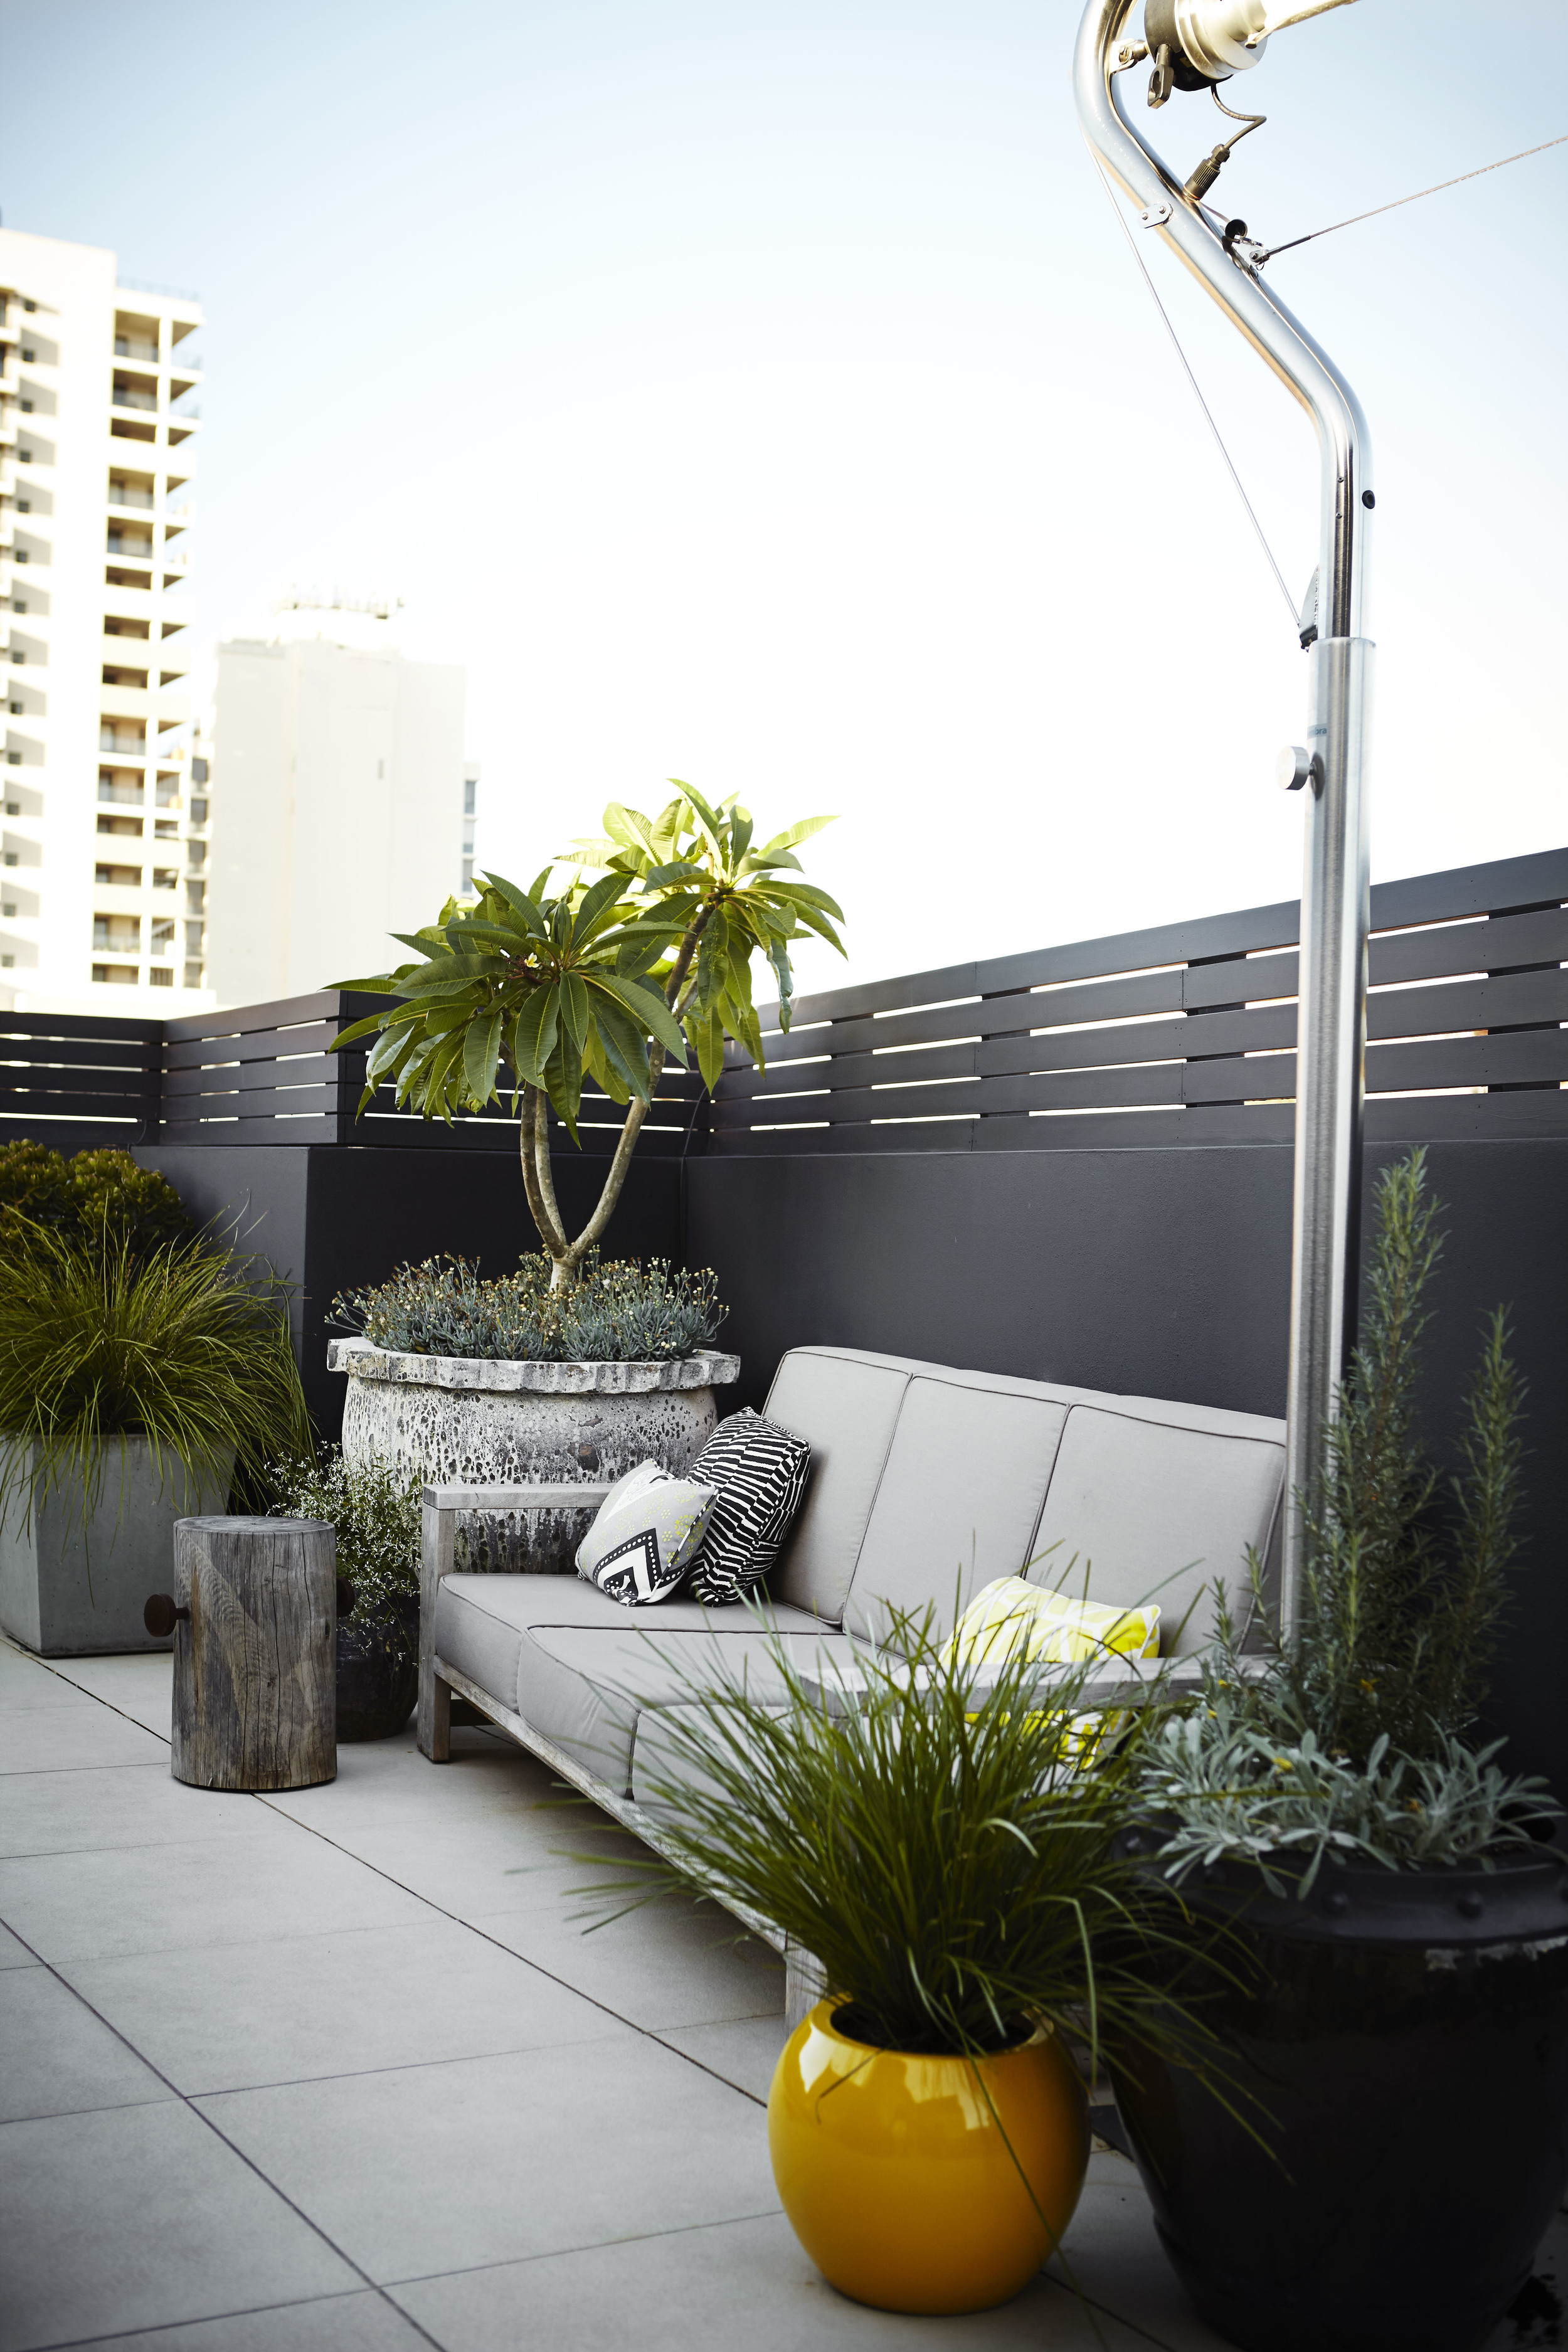 also from our Redfern Rooftop, an outdoor lounge retreat is made cosy and inviting with a feature pot, small tree and complimentary smaller items